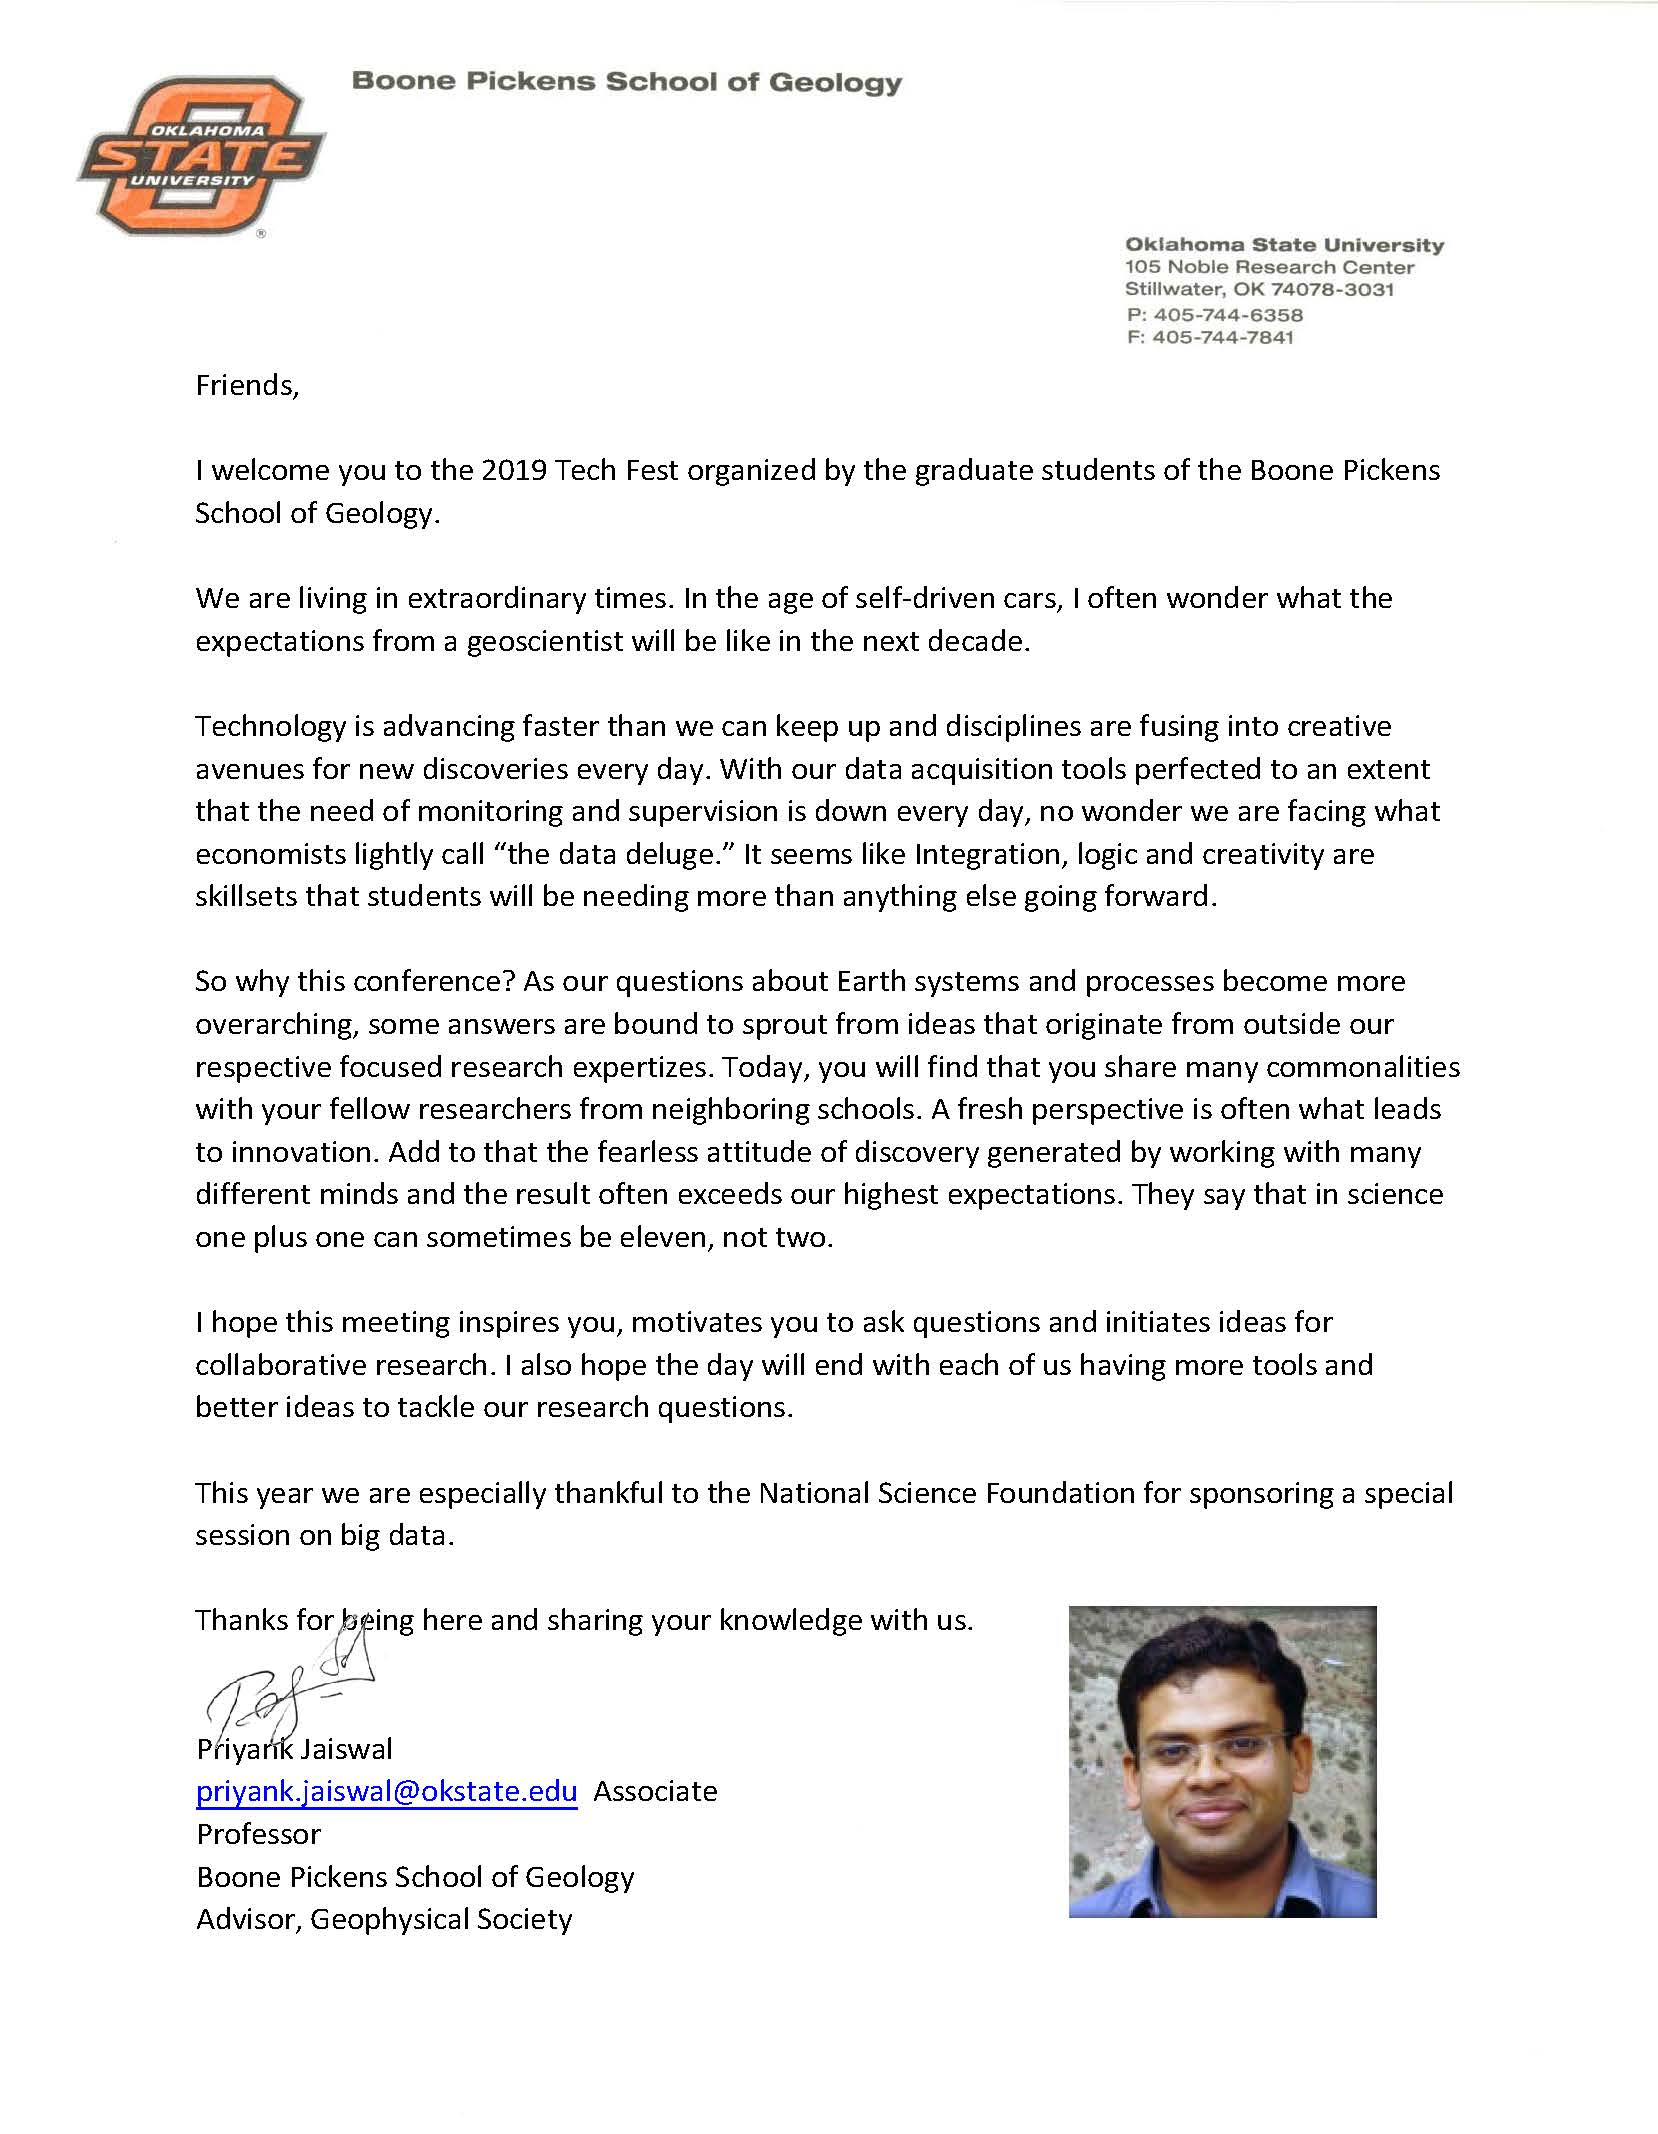 Priyank welcome letter